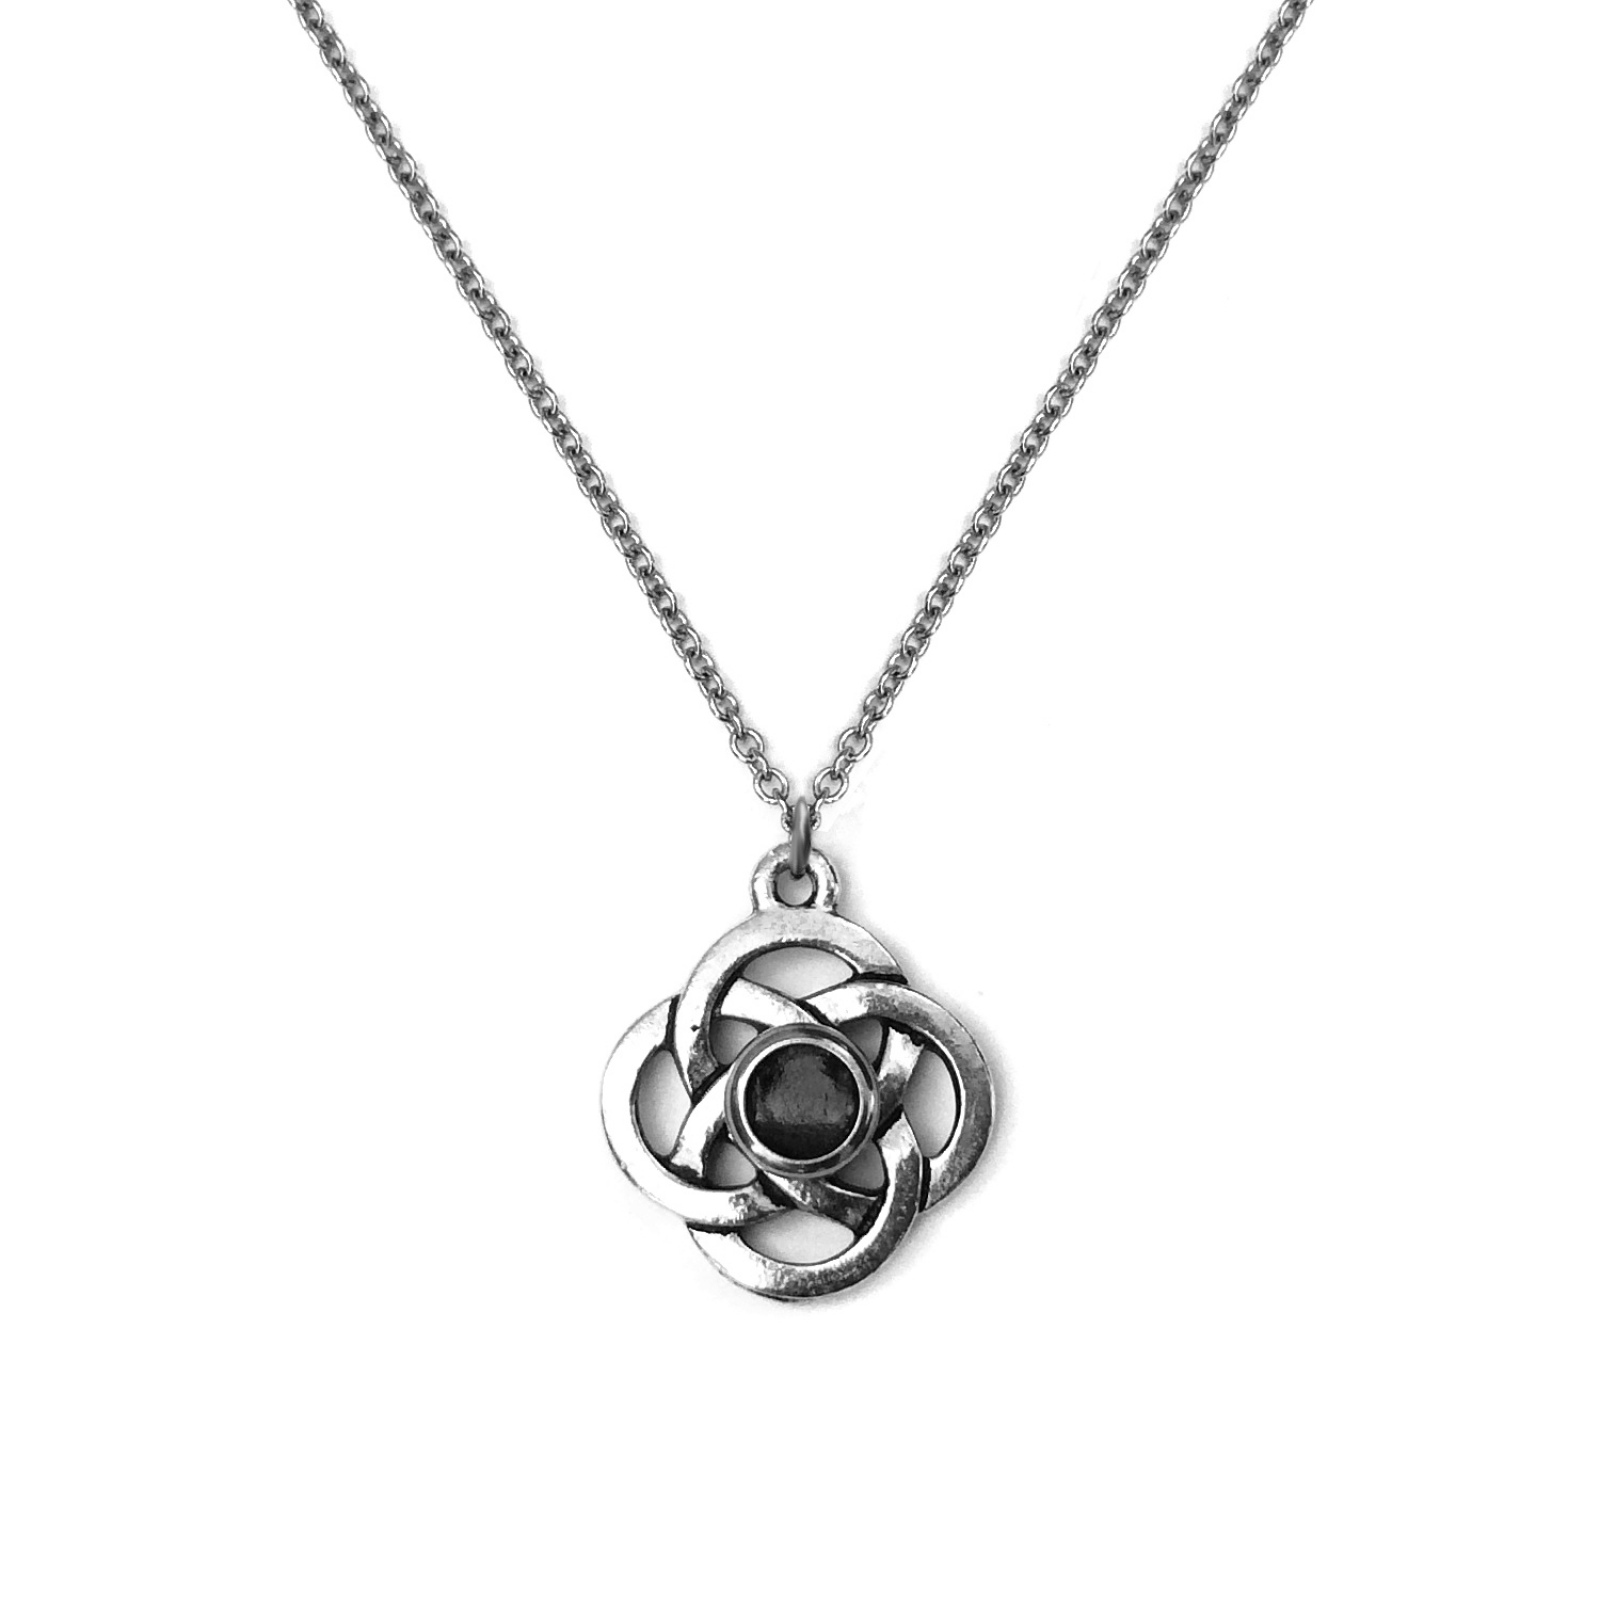 pewter jewelry silver necklace for hero celtic pendant with love irish knot black woman product center